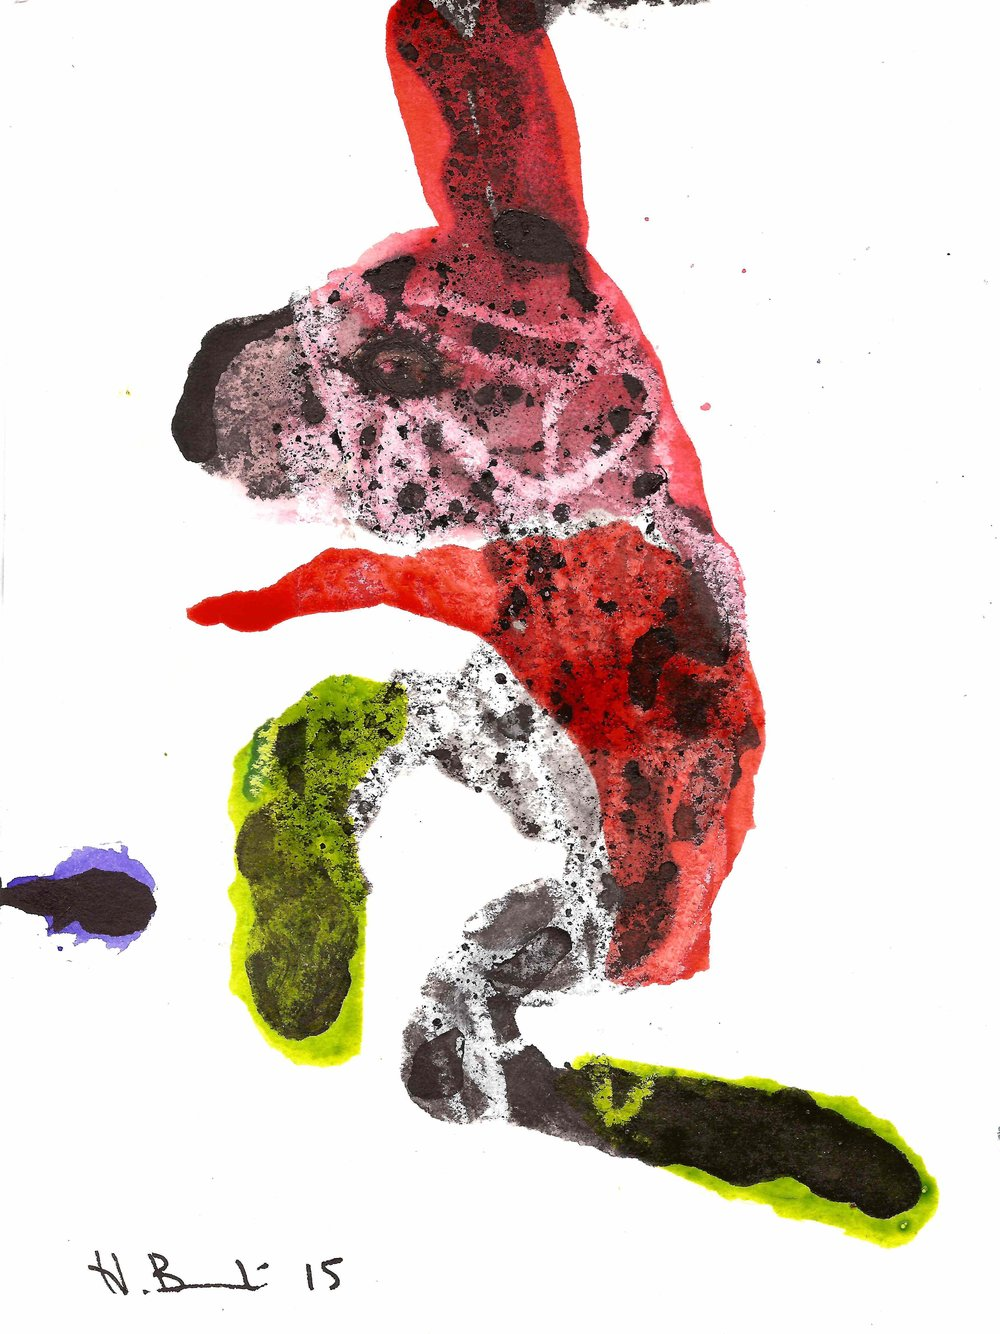 Haude Bernabé_Lucioles 5_2015_Mixed Media on Paper (Ink, Pencil and Varnish)_14 cm x 19 cm_HKD .jpg